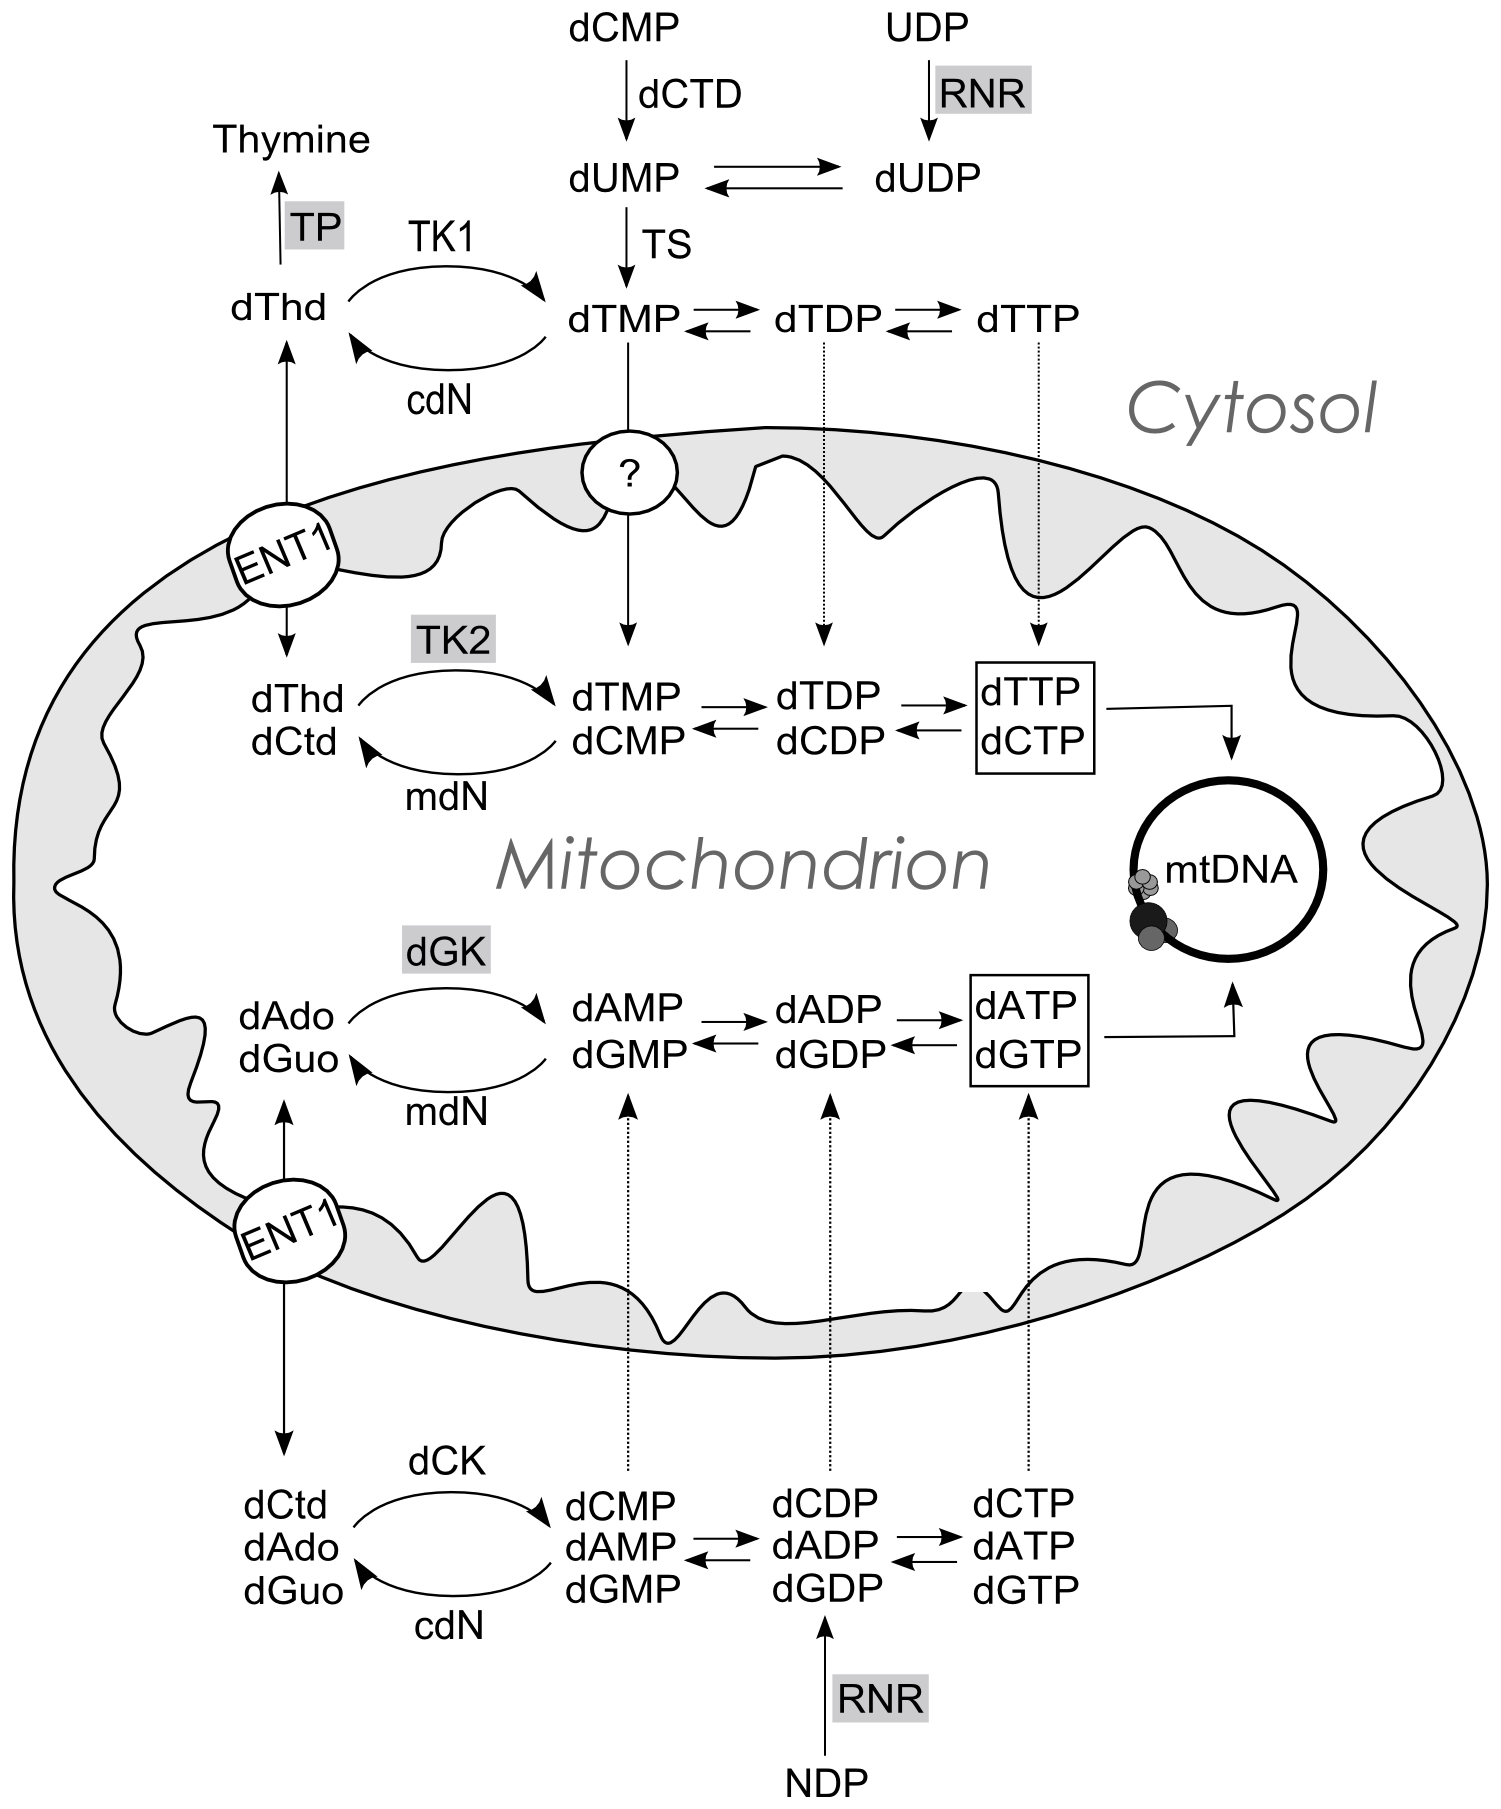 Schematic representation of the metabolic pathways that supply dNTPs for mtDNA replication.